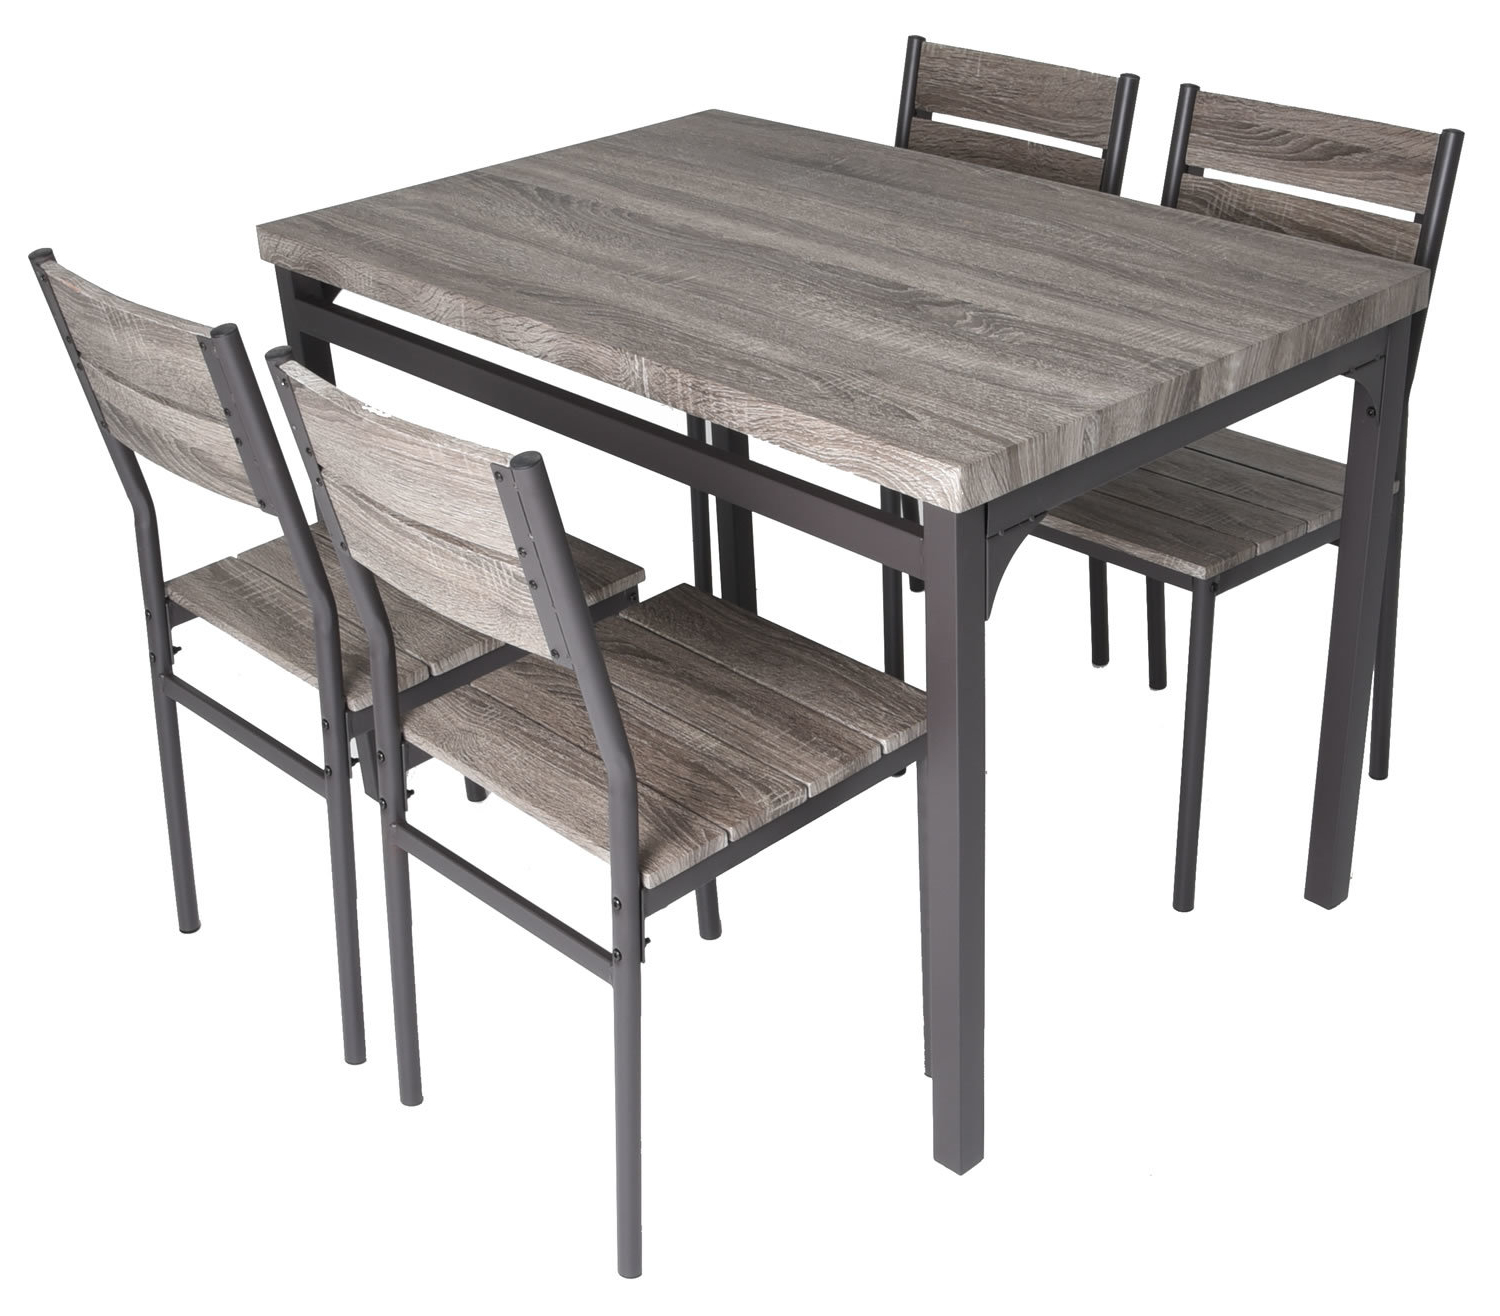 Favorite Gracie Oaks Emmeline 5 Piece Breakfast Nook Dining Set & Reviews Regarding 5 Piece Breakfast Nook Dining Sets (View 14 of 25)